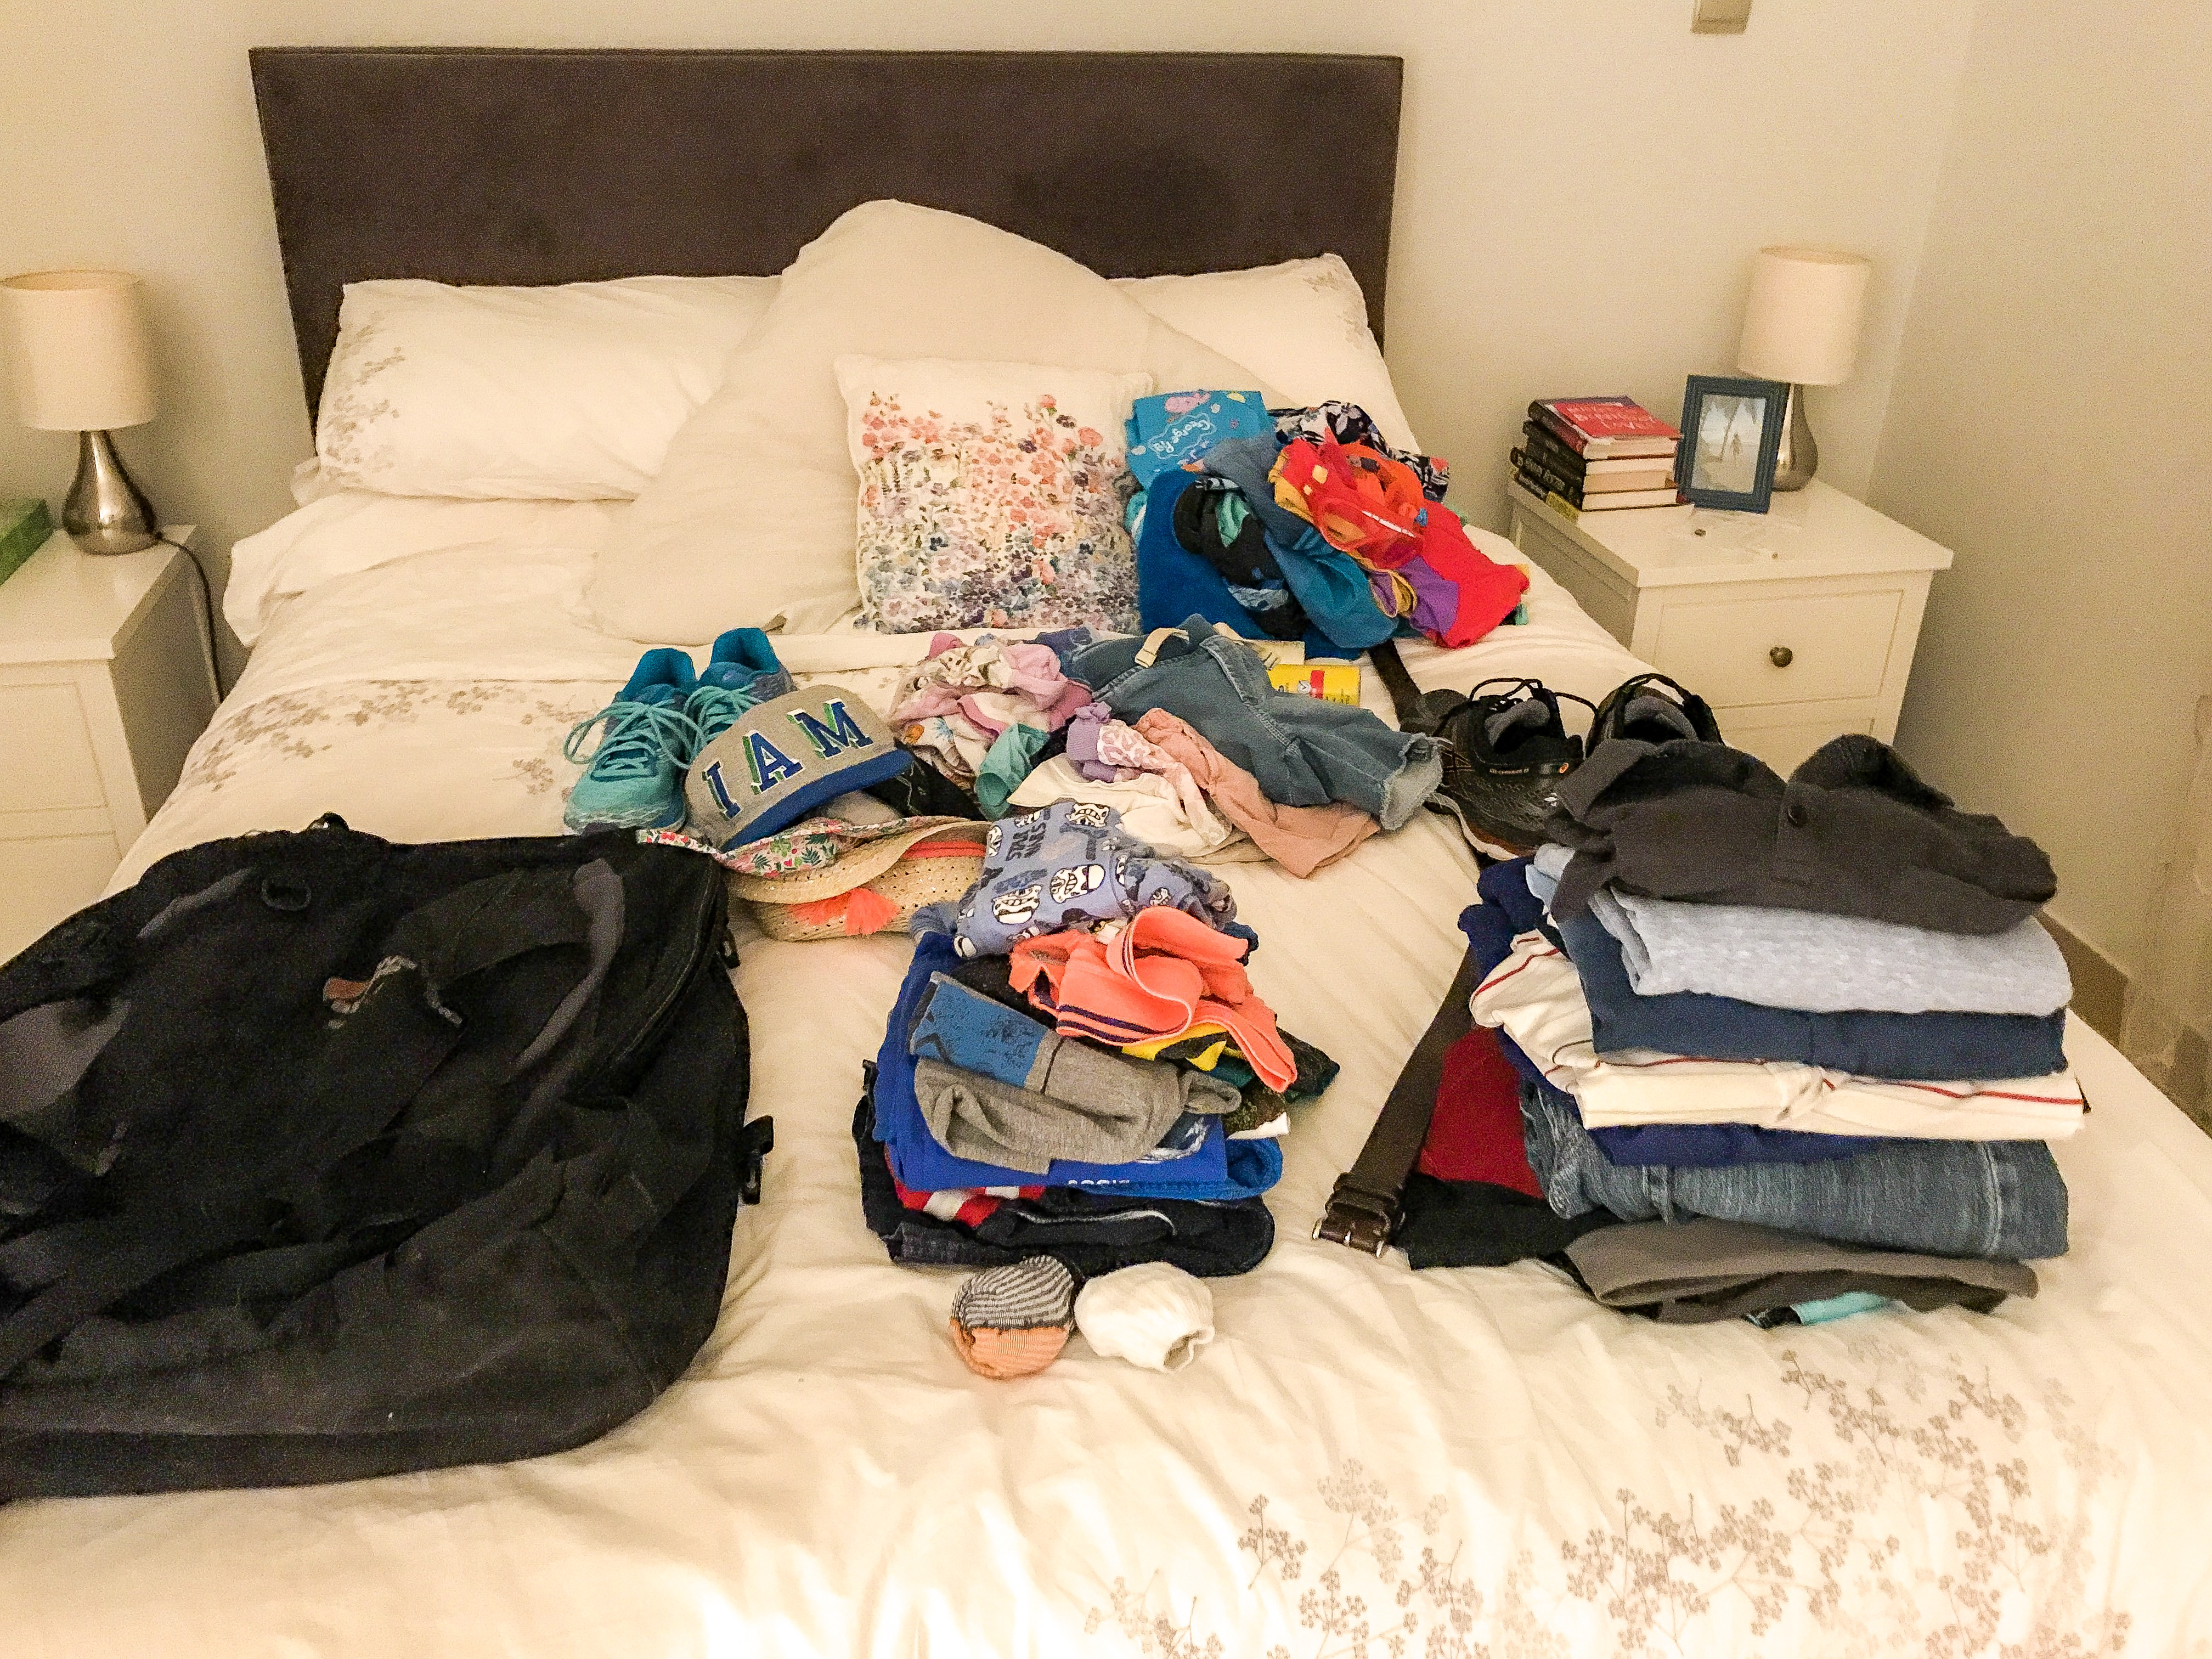 Packing laid out on bed